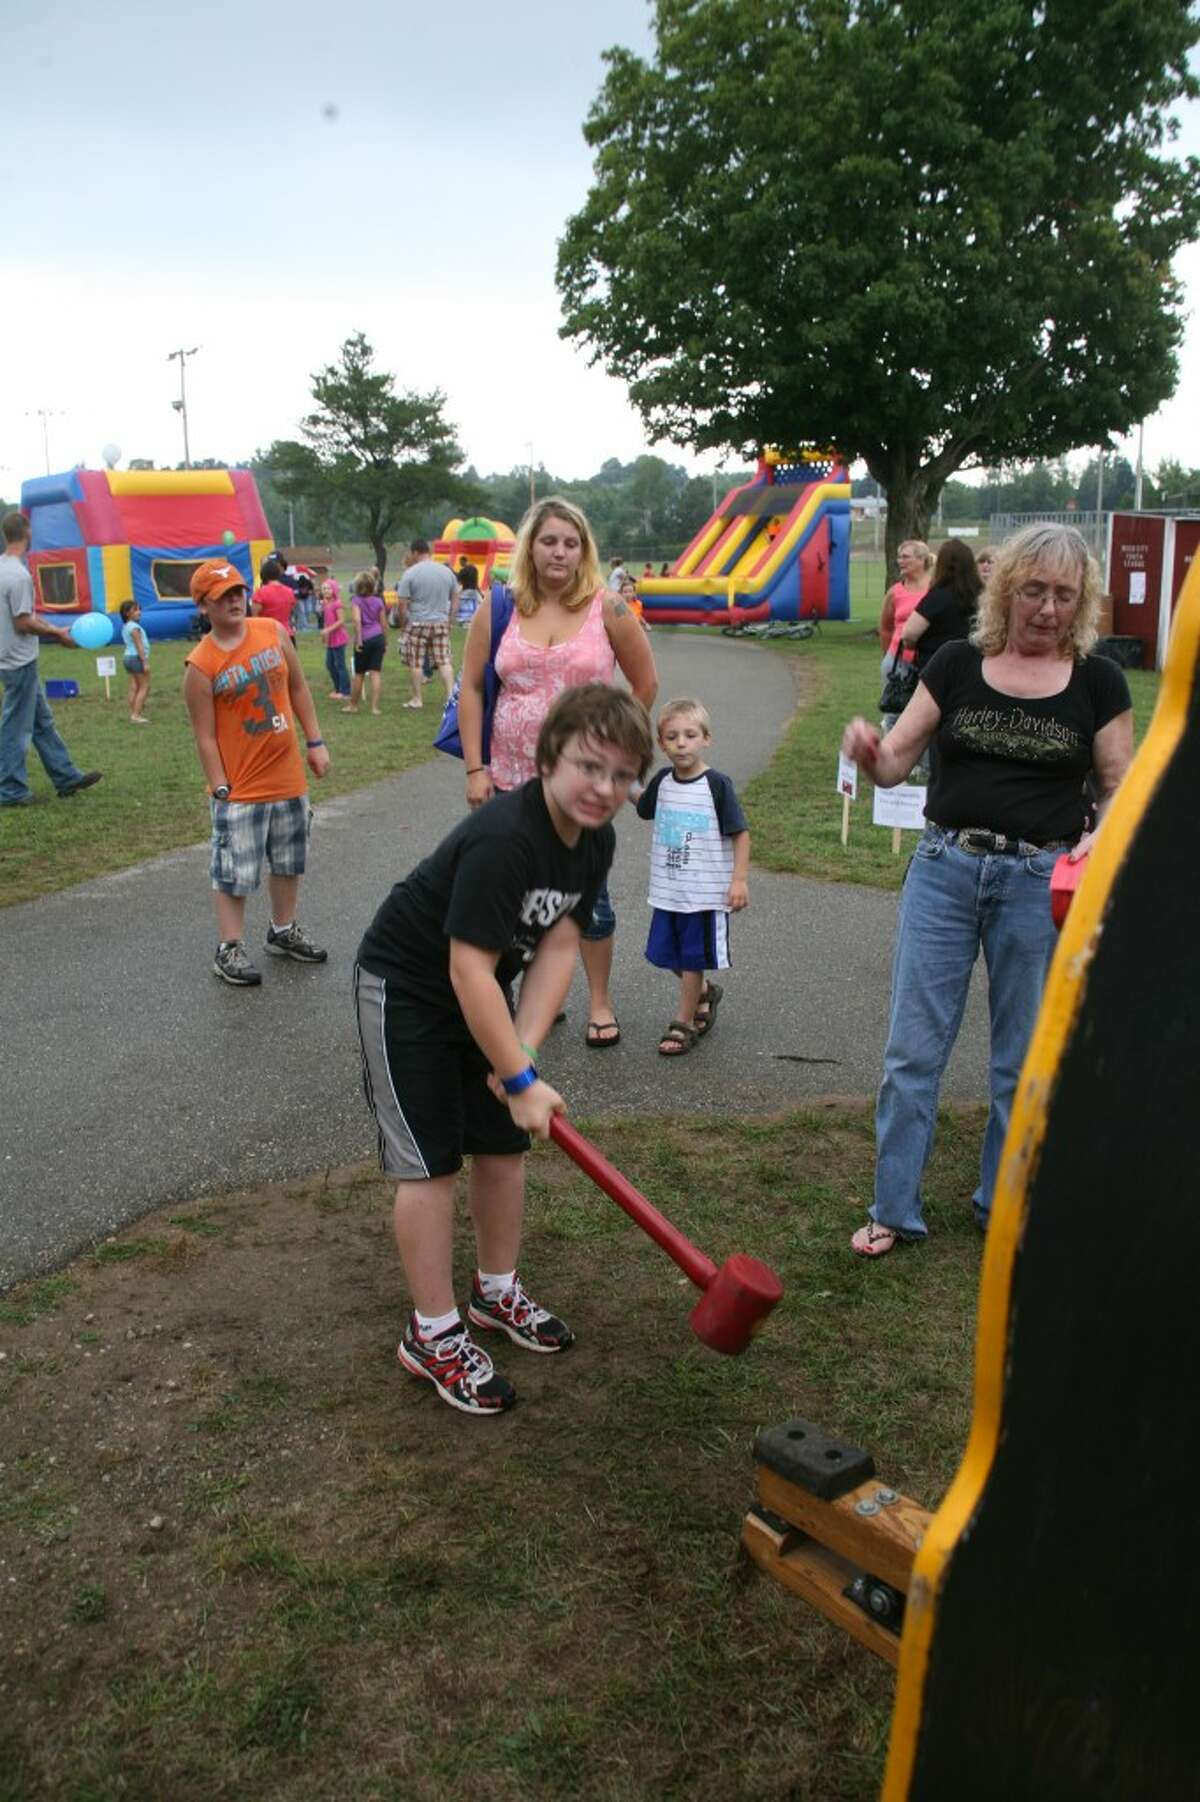 HAMMER TIME: A boy tries the sledge hammer game at the United Way and Yoplait Carnival, part of Reed City's Crossroads Celebration. The festival ran Wednesday through Sunday.